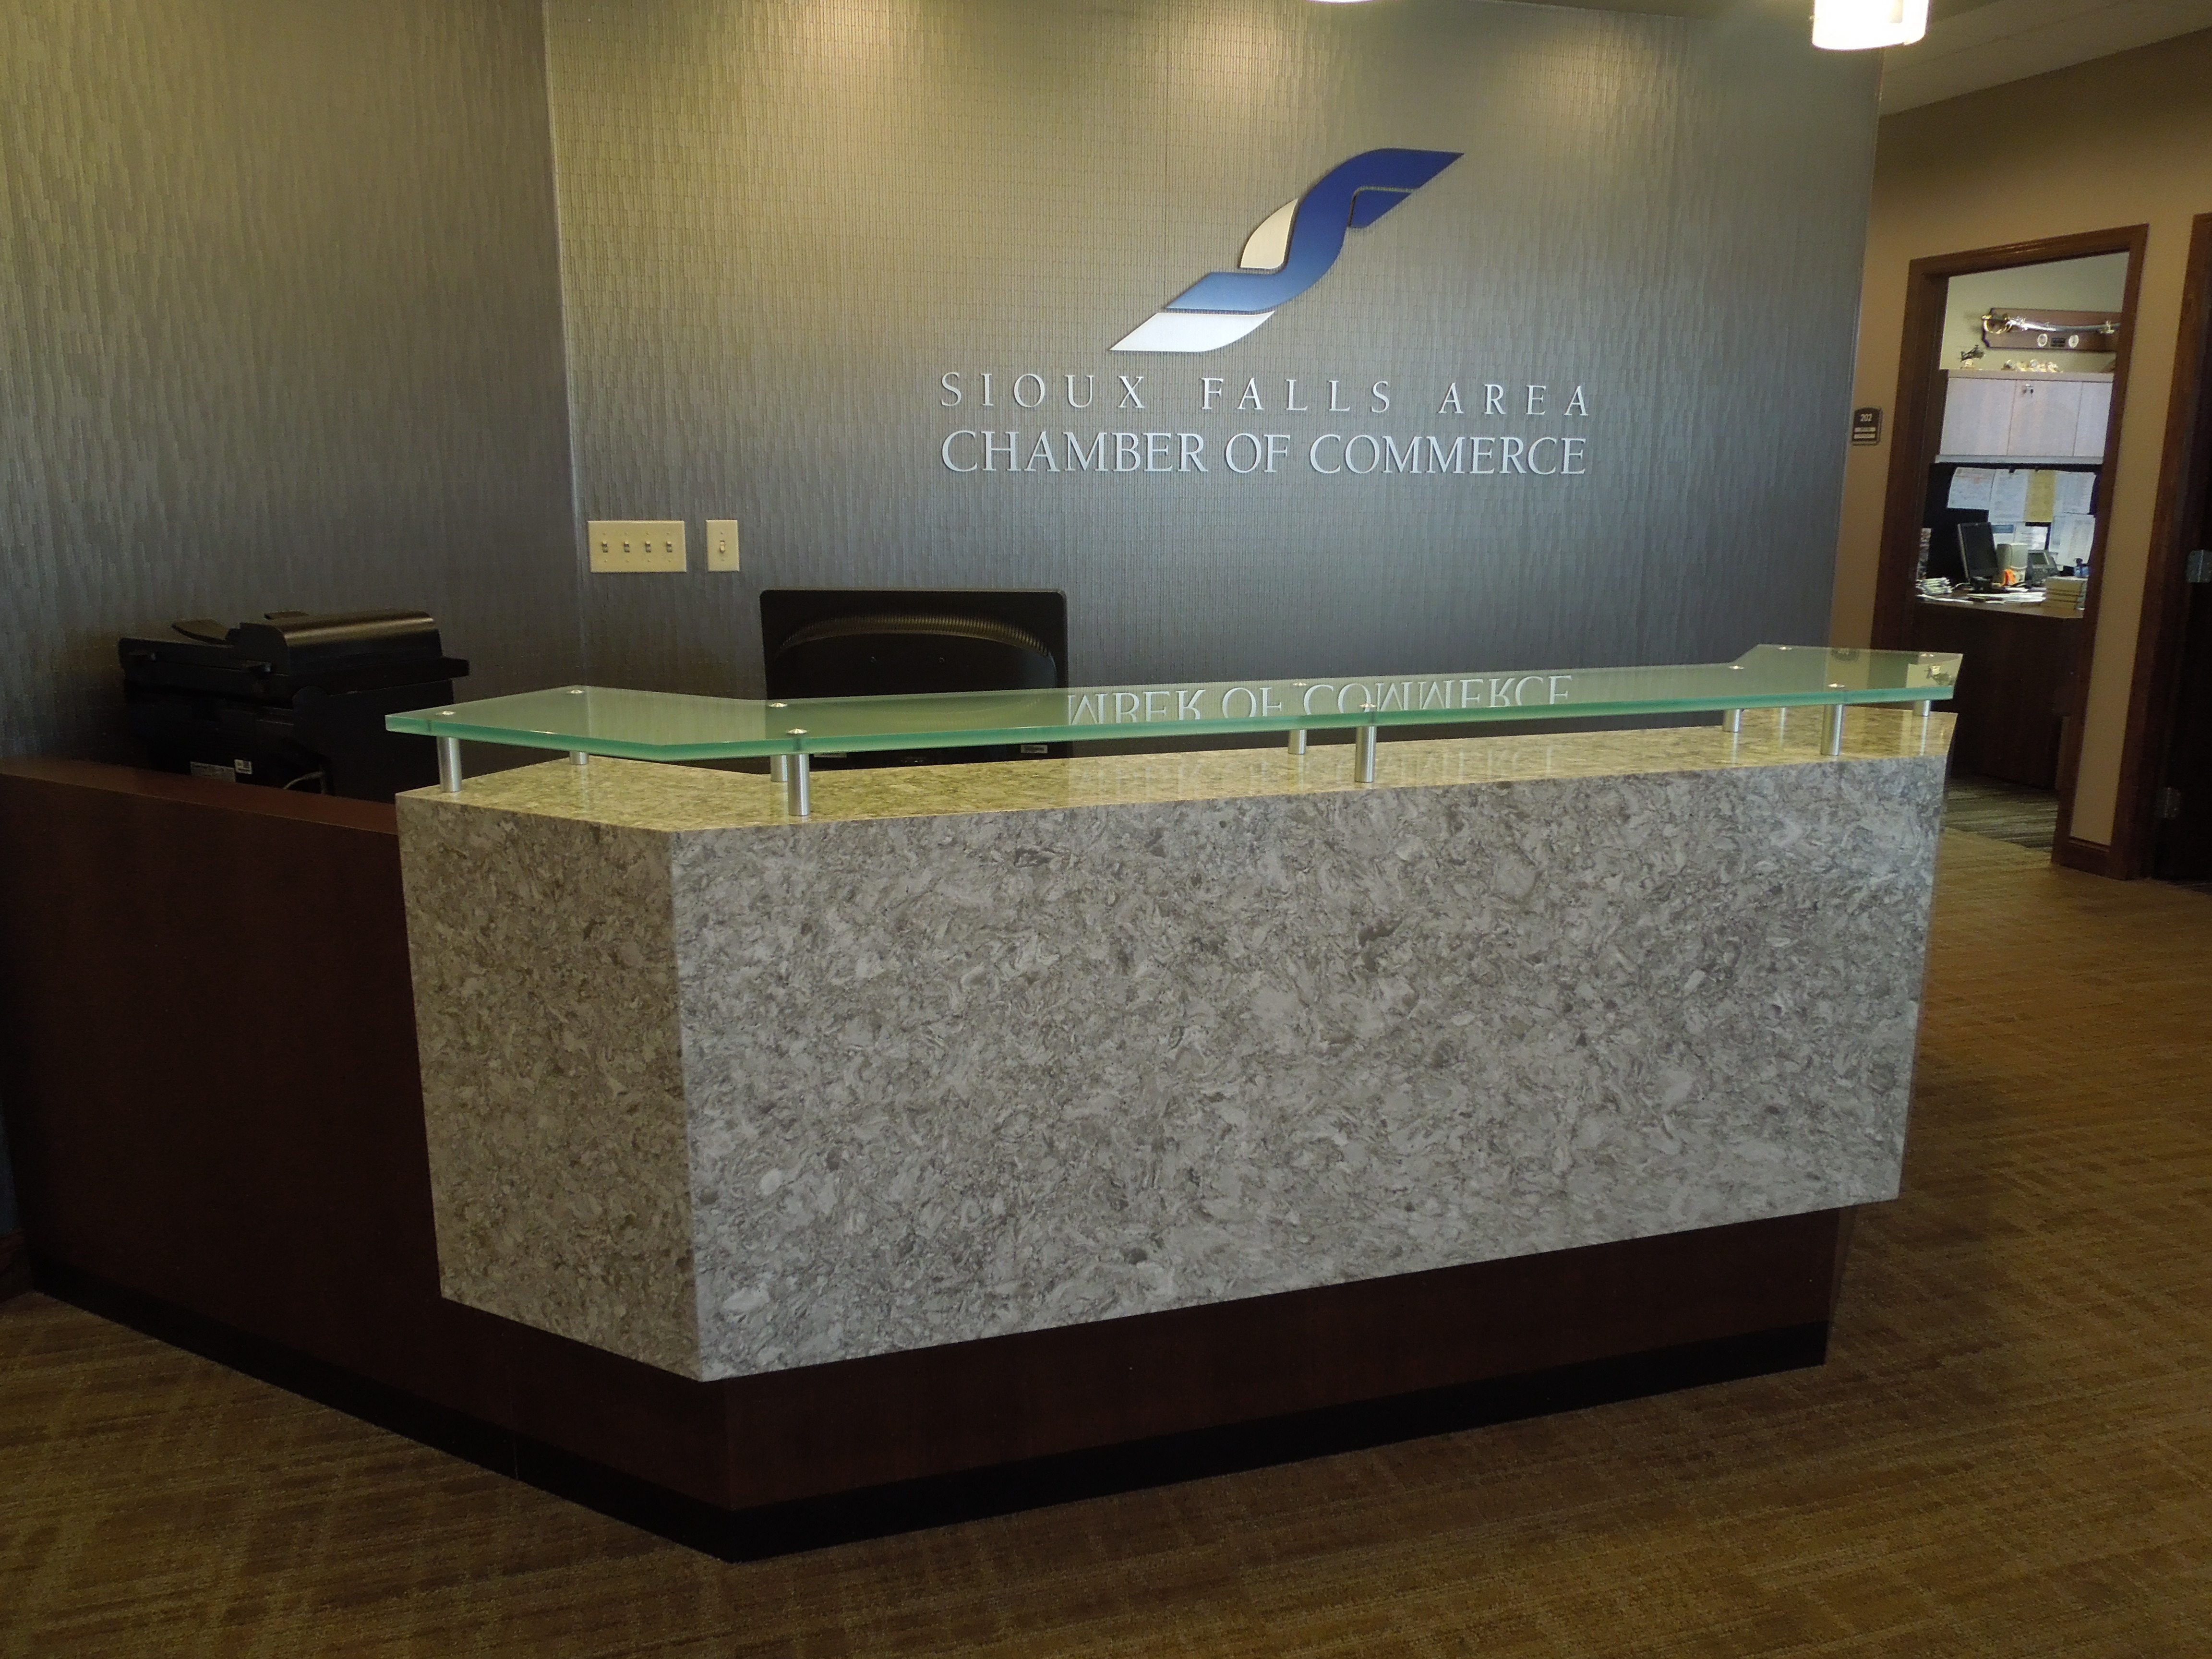 Custom Design Cabinetry Gives New Look To Sioux Falls